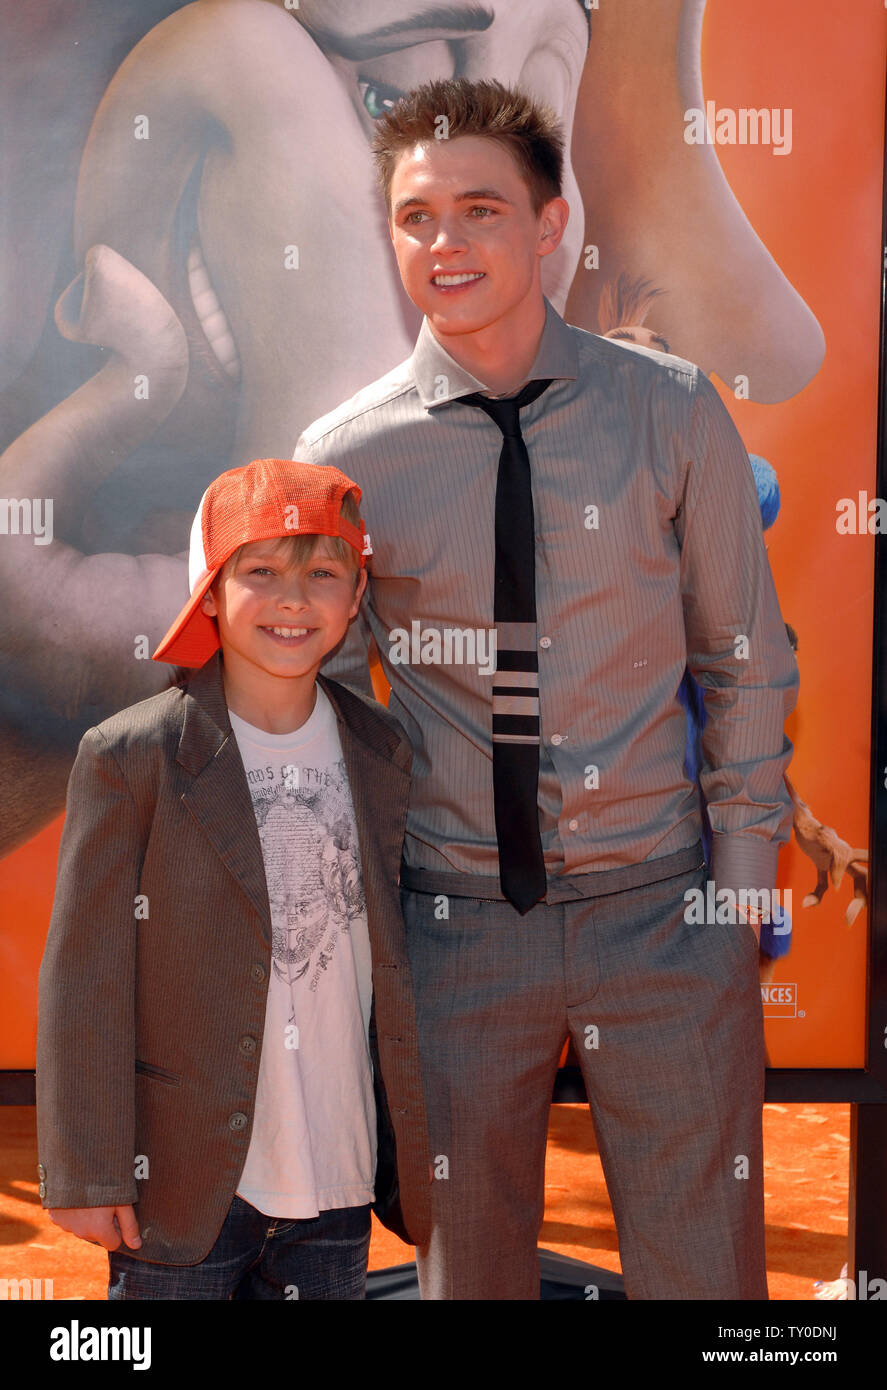 Actor Jesse Mccartney R The Voice Of Jojo In The Animated Motion Picture Horton Hears A Who Based On A Dr Seuss Story Attends The The World Premiere Of The Film With Type into google jojo horton hears a who without the inverted commas. https www alamy com actor jesse mccartney r the voice of jojo in the animated motion picture horton hears a who based on a dr seuss story attends the the world premiere of the film with his brother timmy in los angeles on march 8 2008 upi photojim ruymen image257551662 html